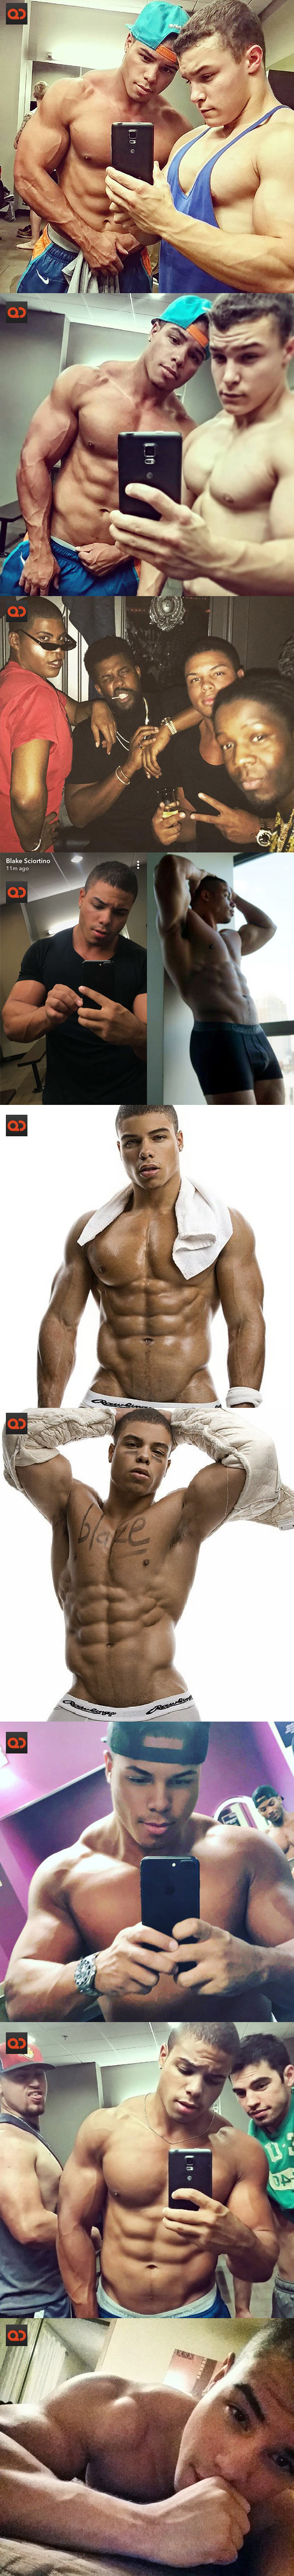 Blake Sciortino, Fitness Model From MTV2 Guy Court, Alleged Exposed Cock Leaks!